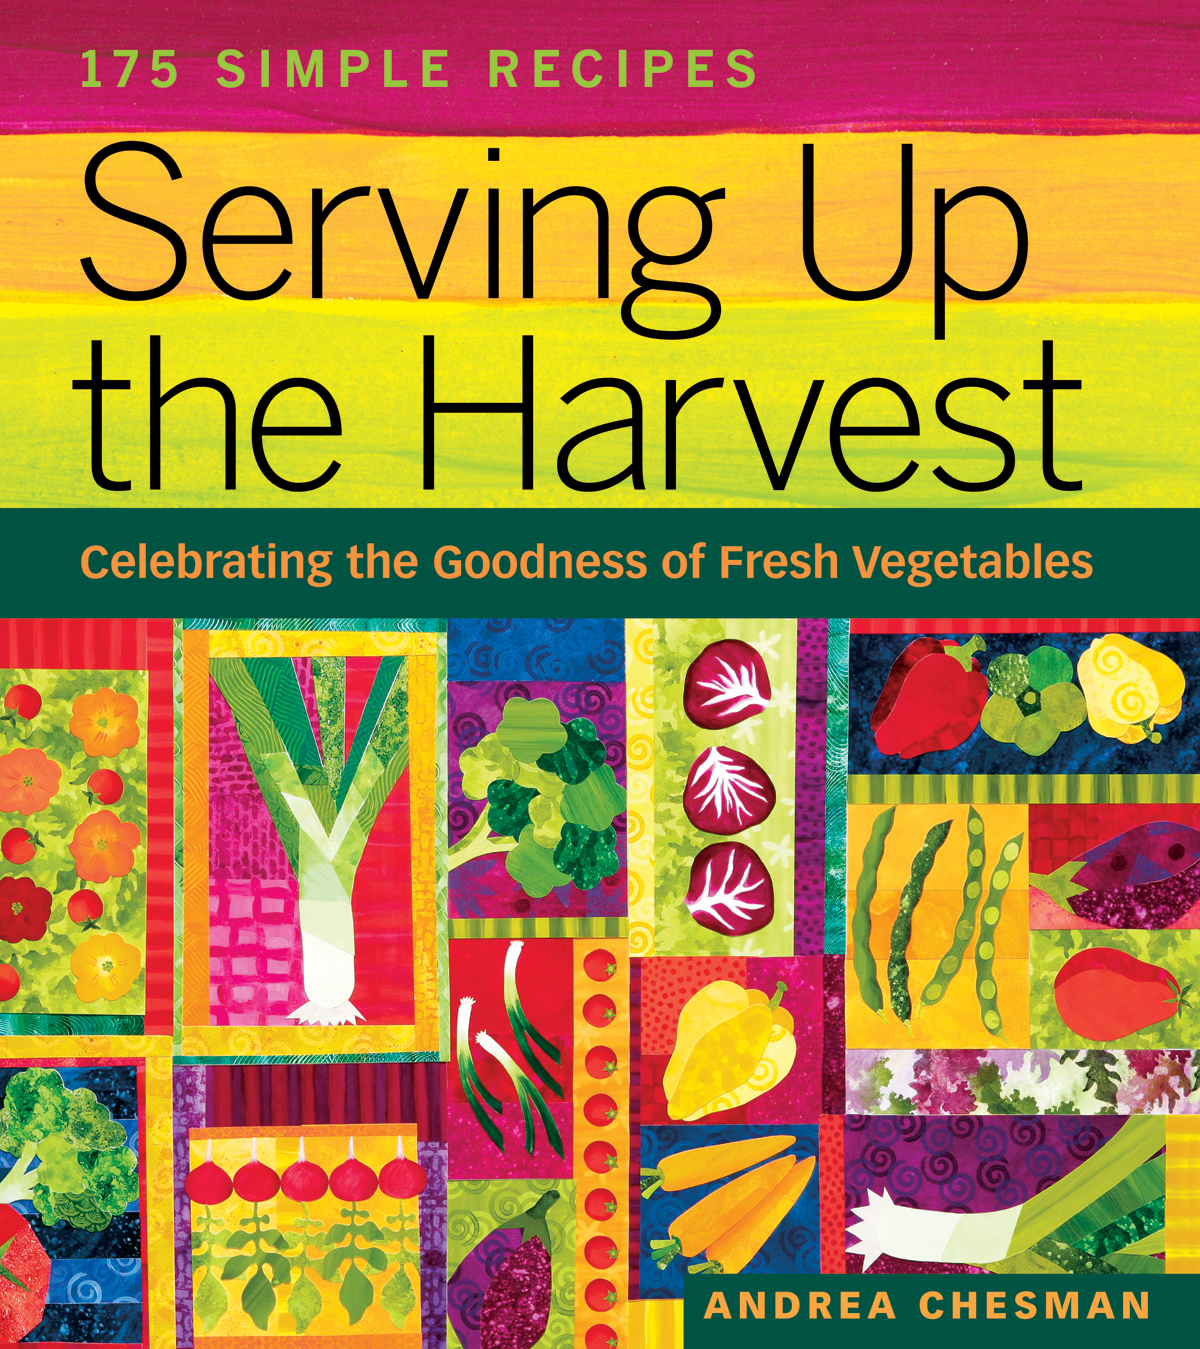 Serving Up the Harvest Celebrating the Goodness of Fresh Vegetables: 175 Simple Recipes - Andrea Chesman